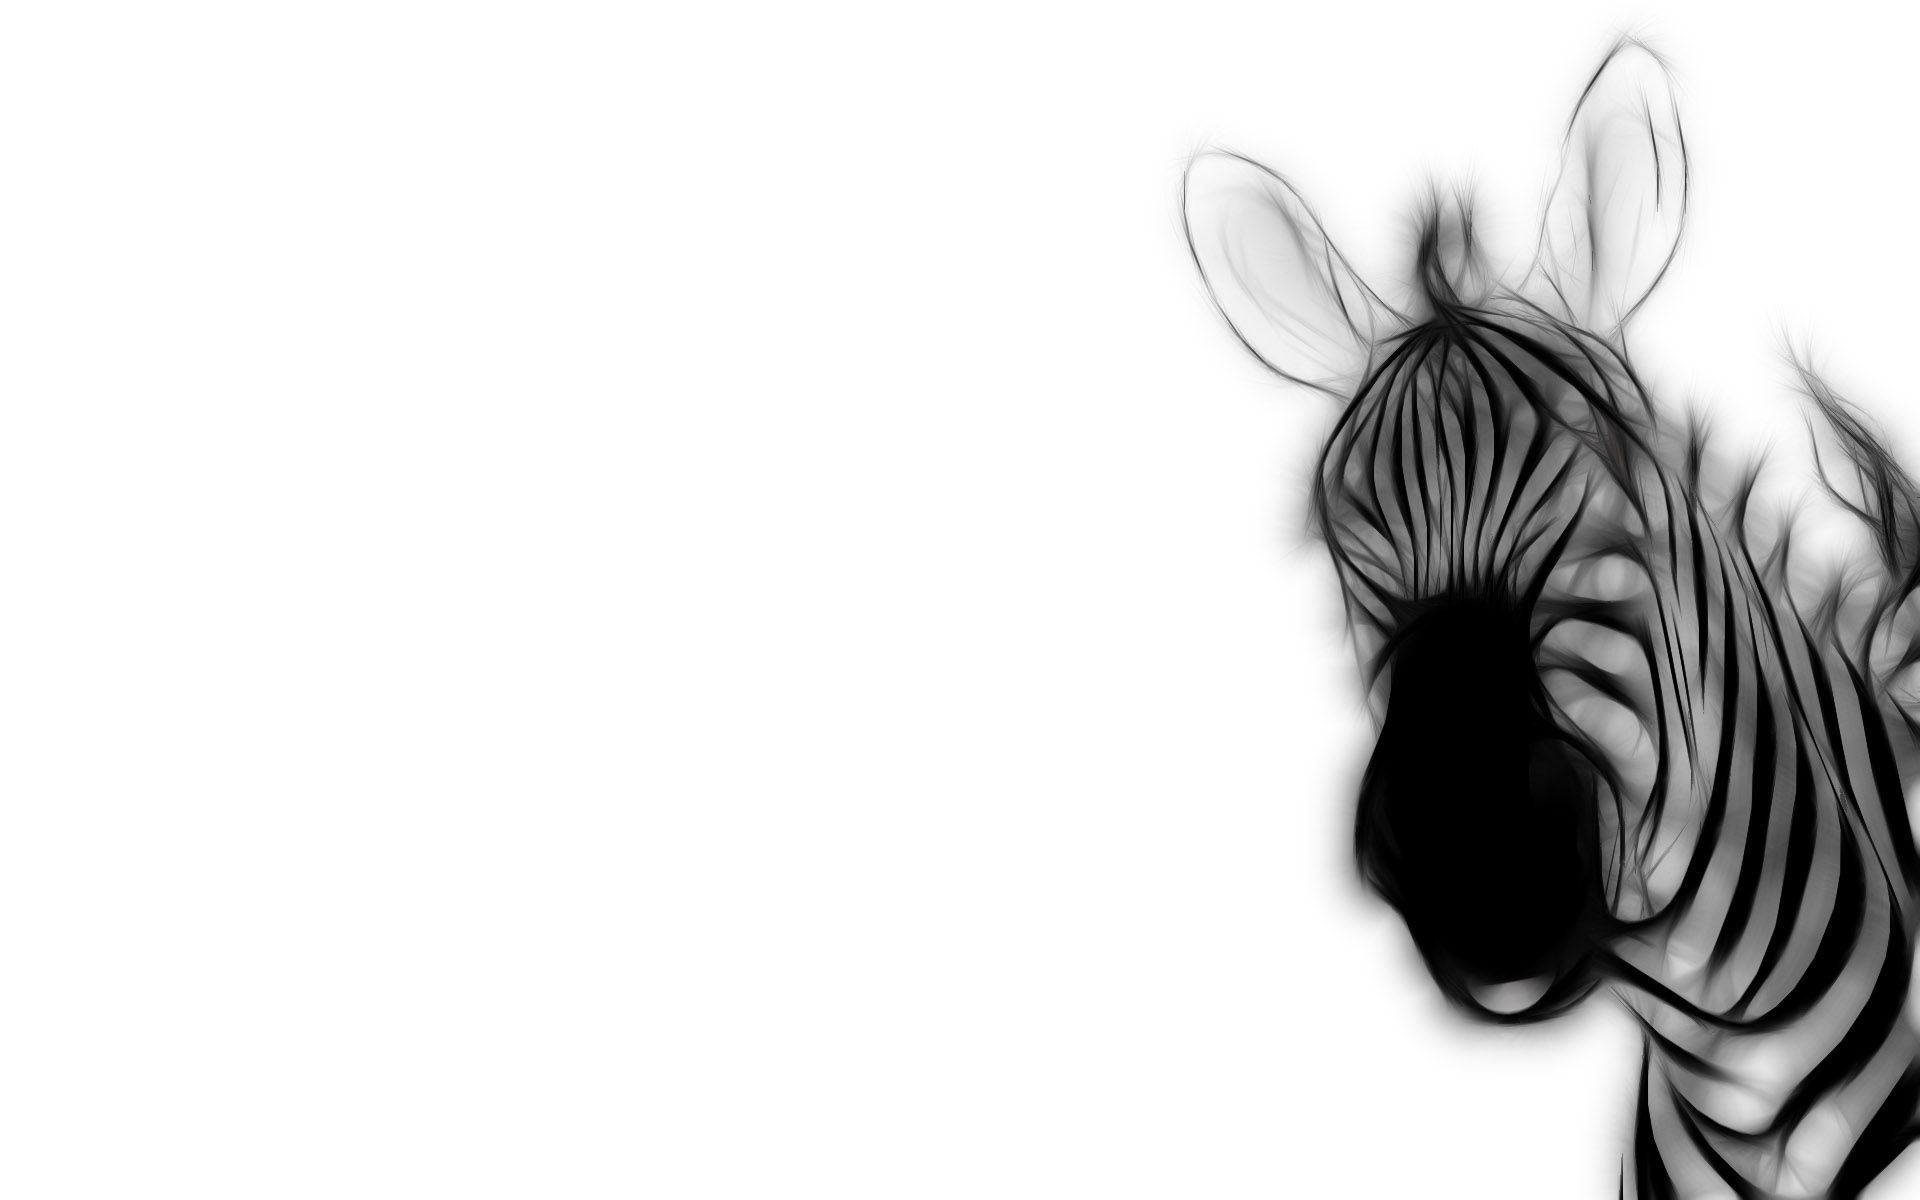 78721 download wallpaper Vector, Zebra, Stripes, Strips, Ears screensavers and pictures for free